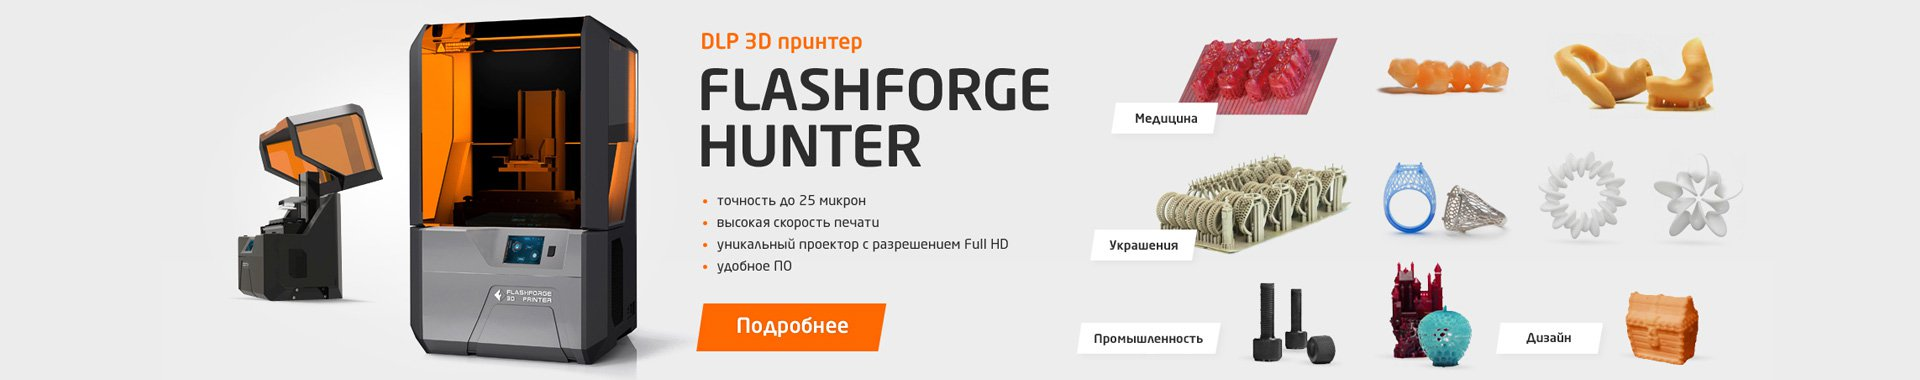 3D принтер FlashForge Hunter